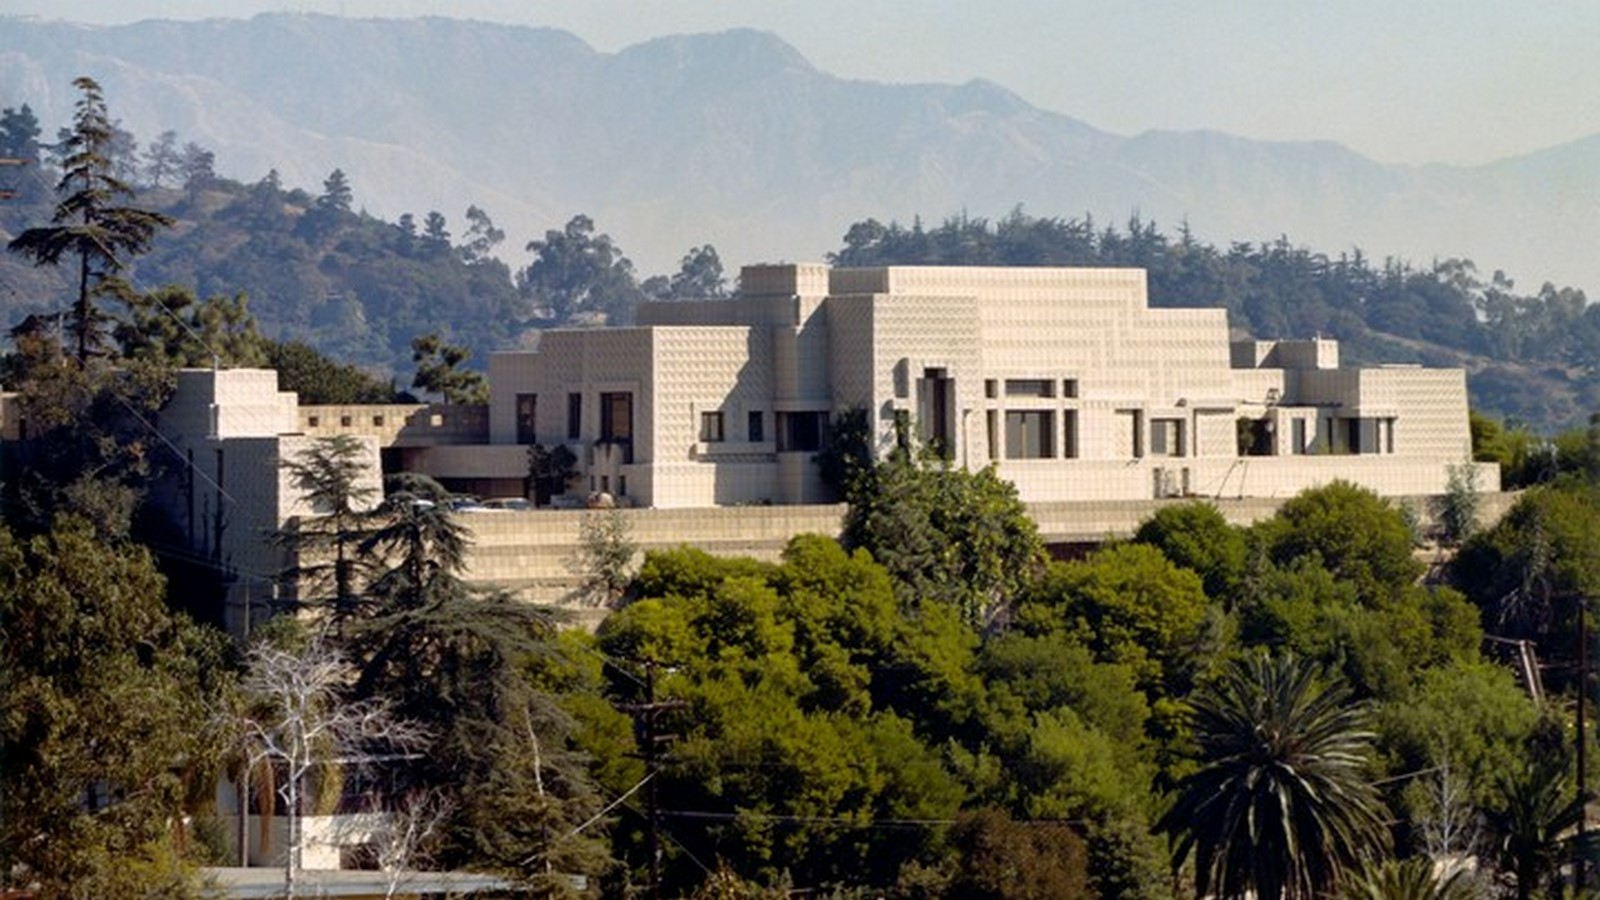 Ennis House by Frank Lloyd Wright A series of concrete block - Sheet2